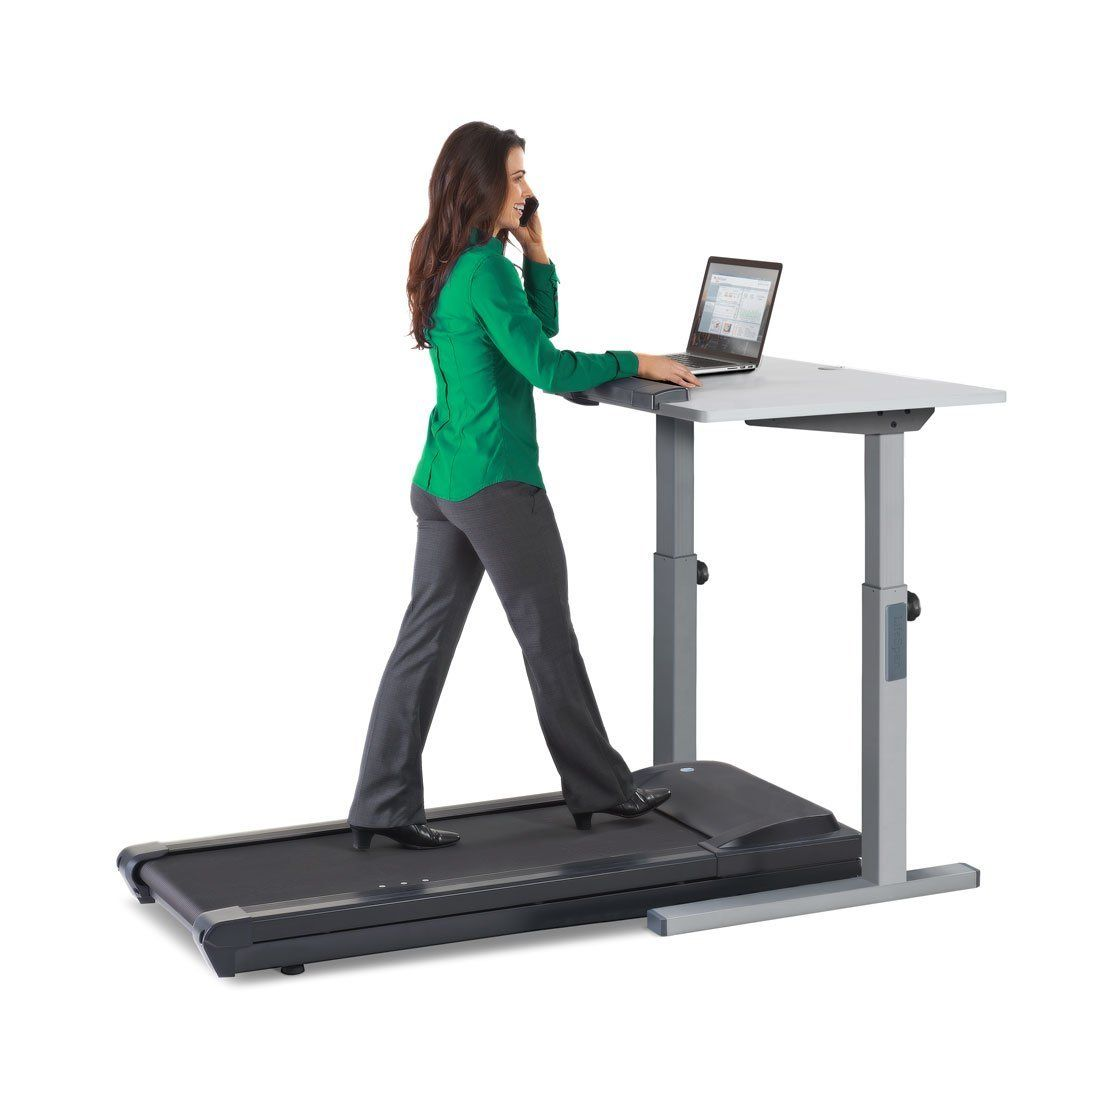 Check Out The Lifespan Tr1200 Dt5 Treadmill Desk Reviewed On Digimancave